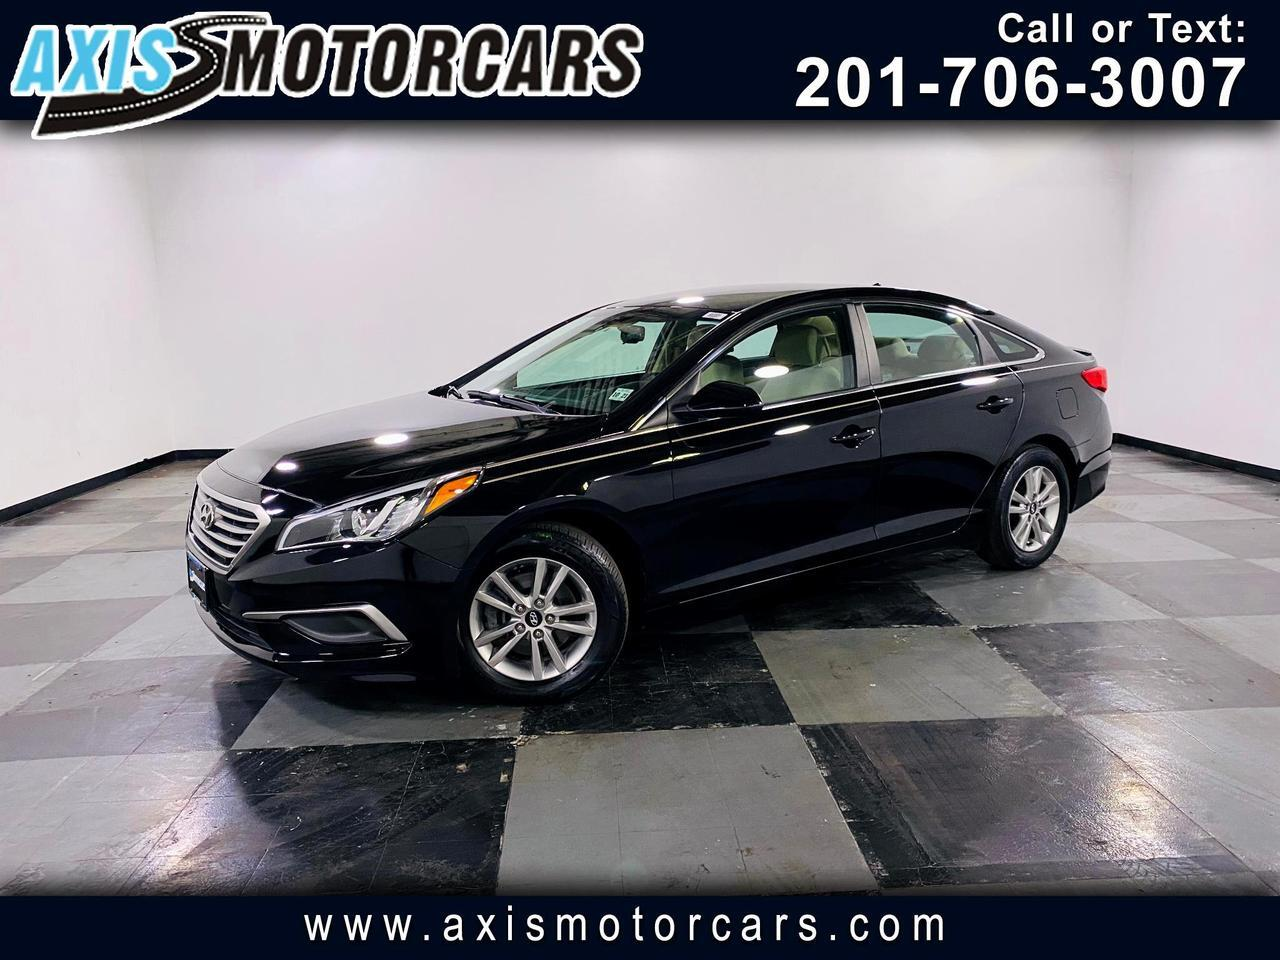 2017 Hyundai Sonata w/Backup Camera Jersey City NJ